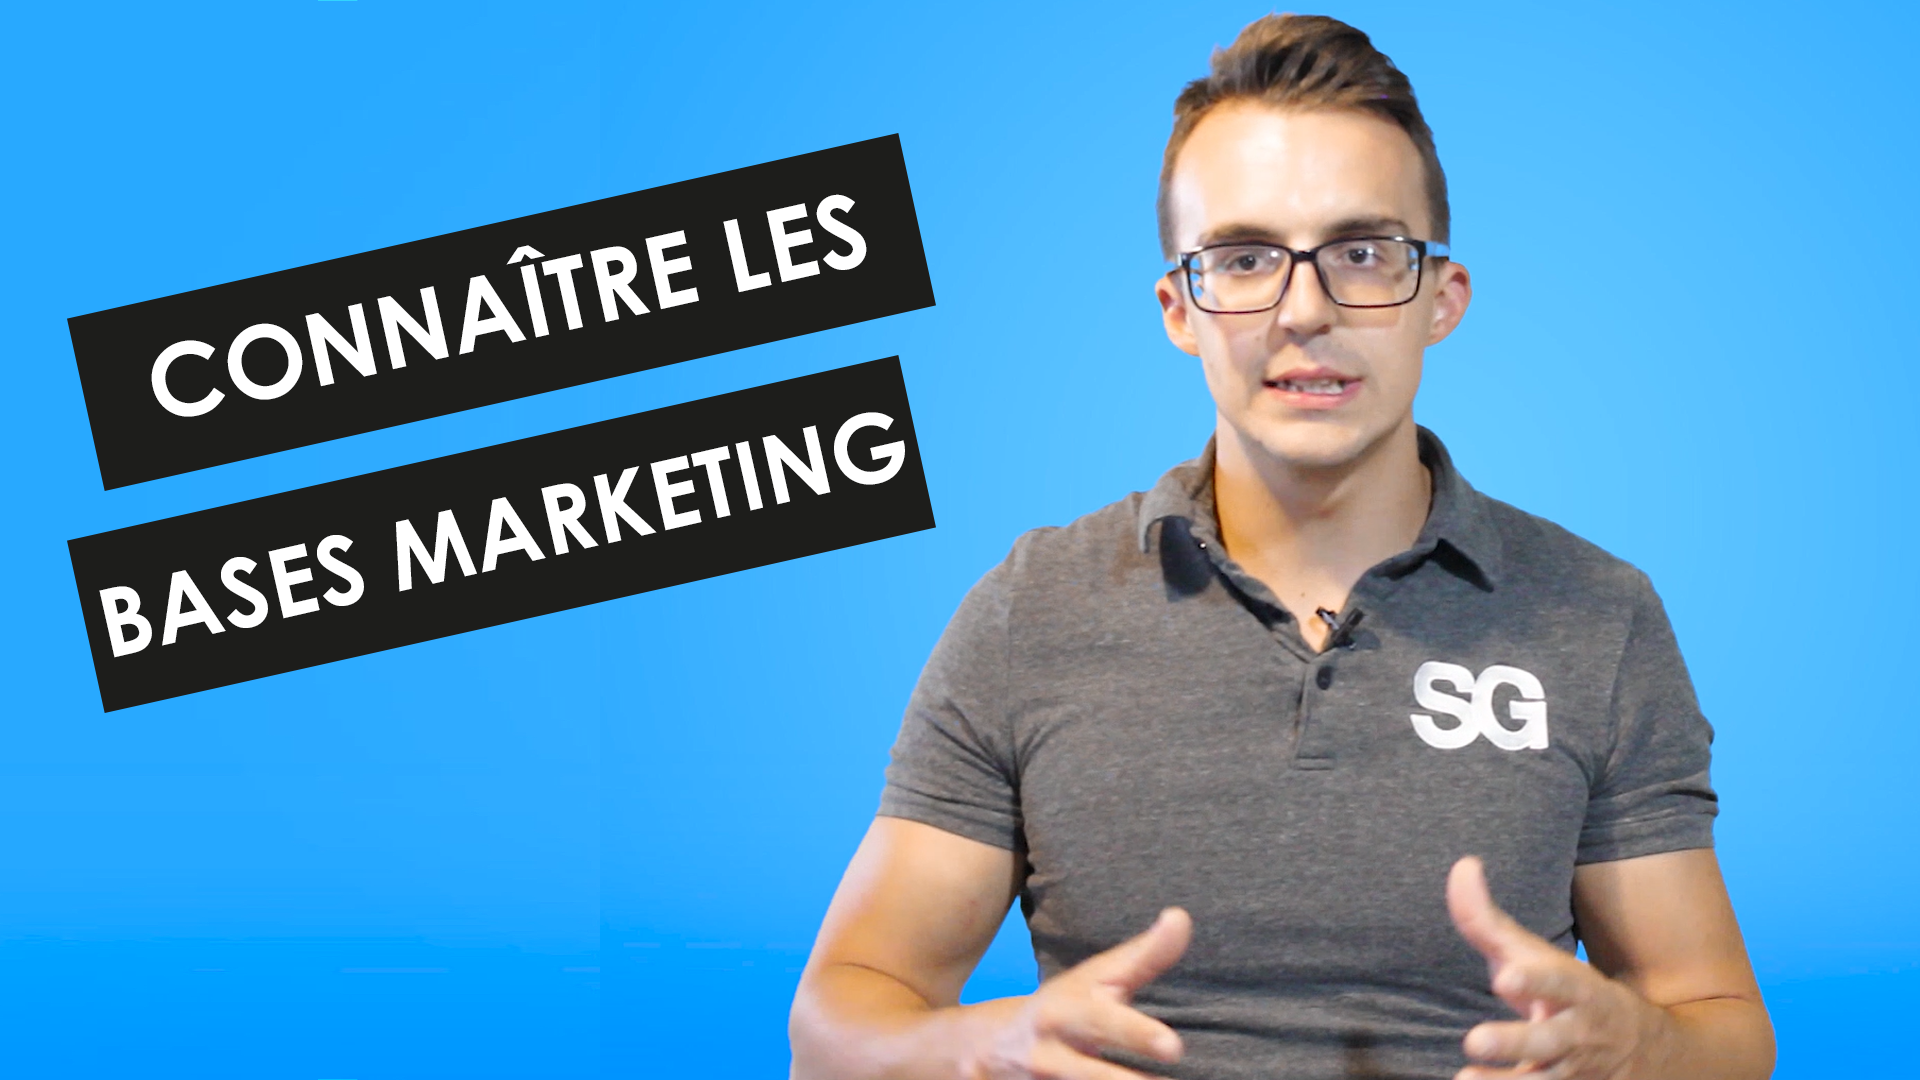 L'importance de connaître les bases du marketing en affaires | Studio Grafik